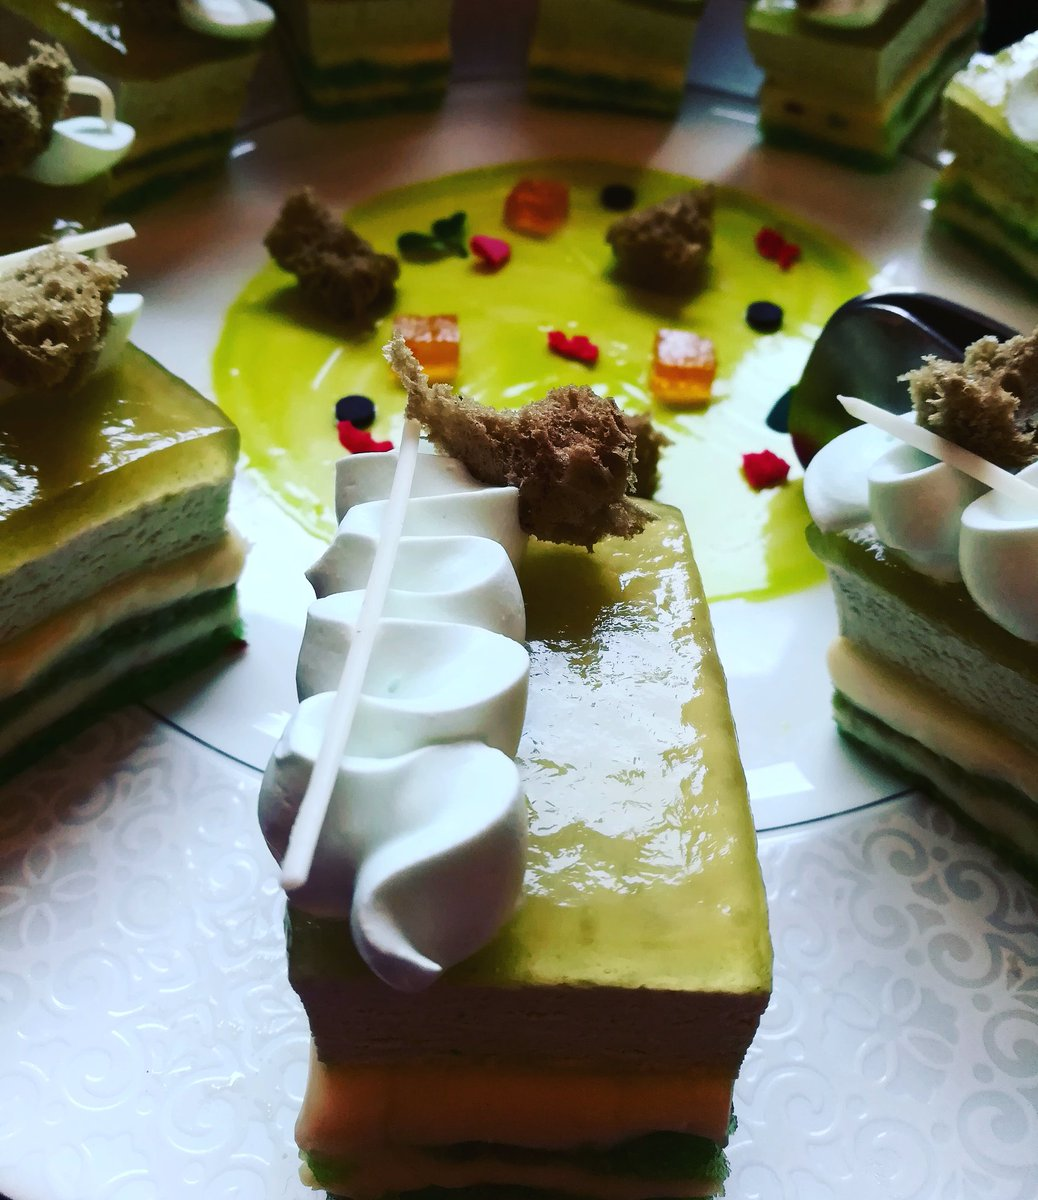 Matcha tea cheesecake @RitzCarlton #RCMemories #DessertDay #cake #foodtalkindia #BuzzFeed #LBB #foodforthought #foodblogger<br>http://pic.twitter.com/7cxb5ZT47p